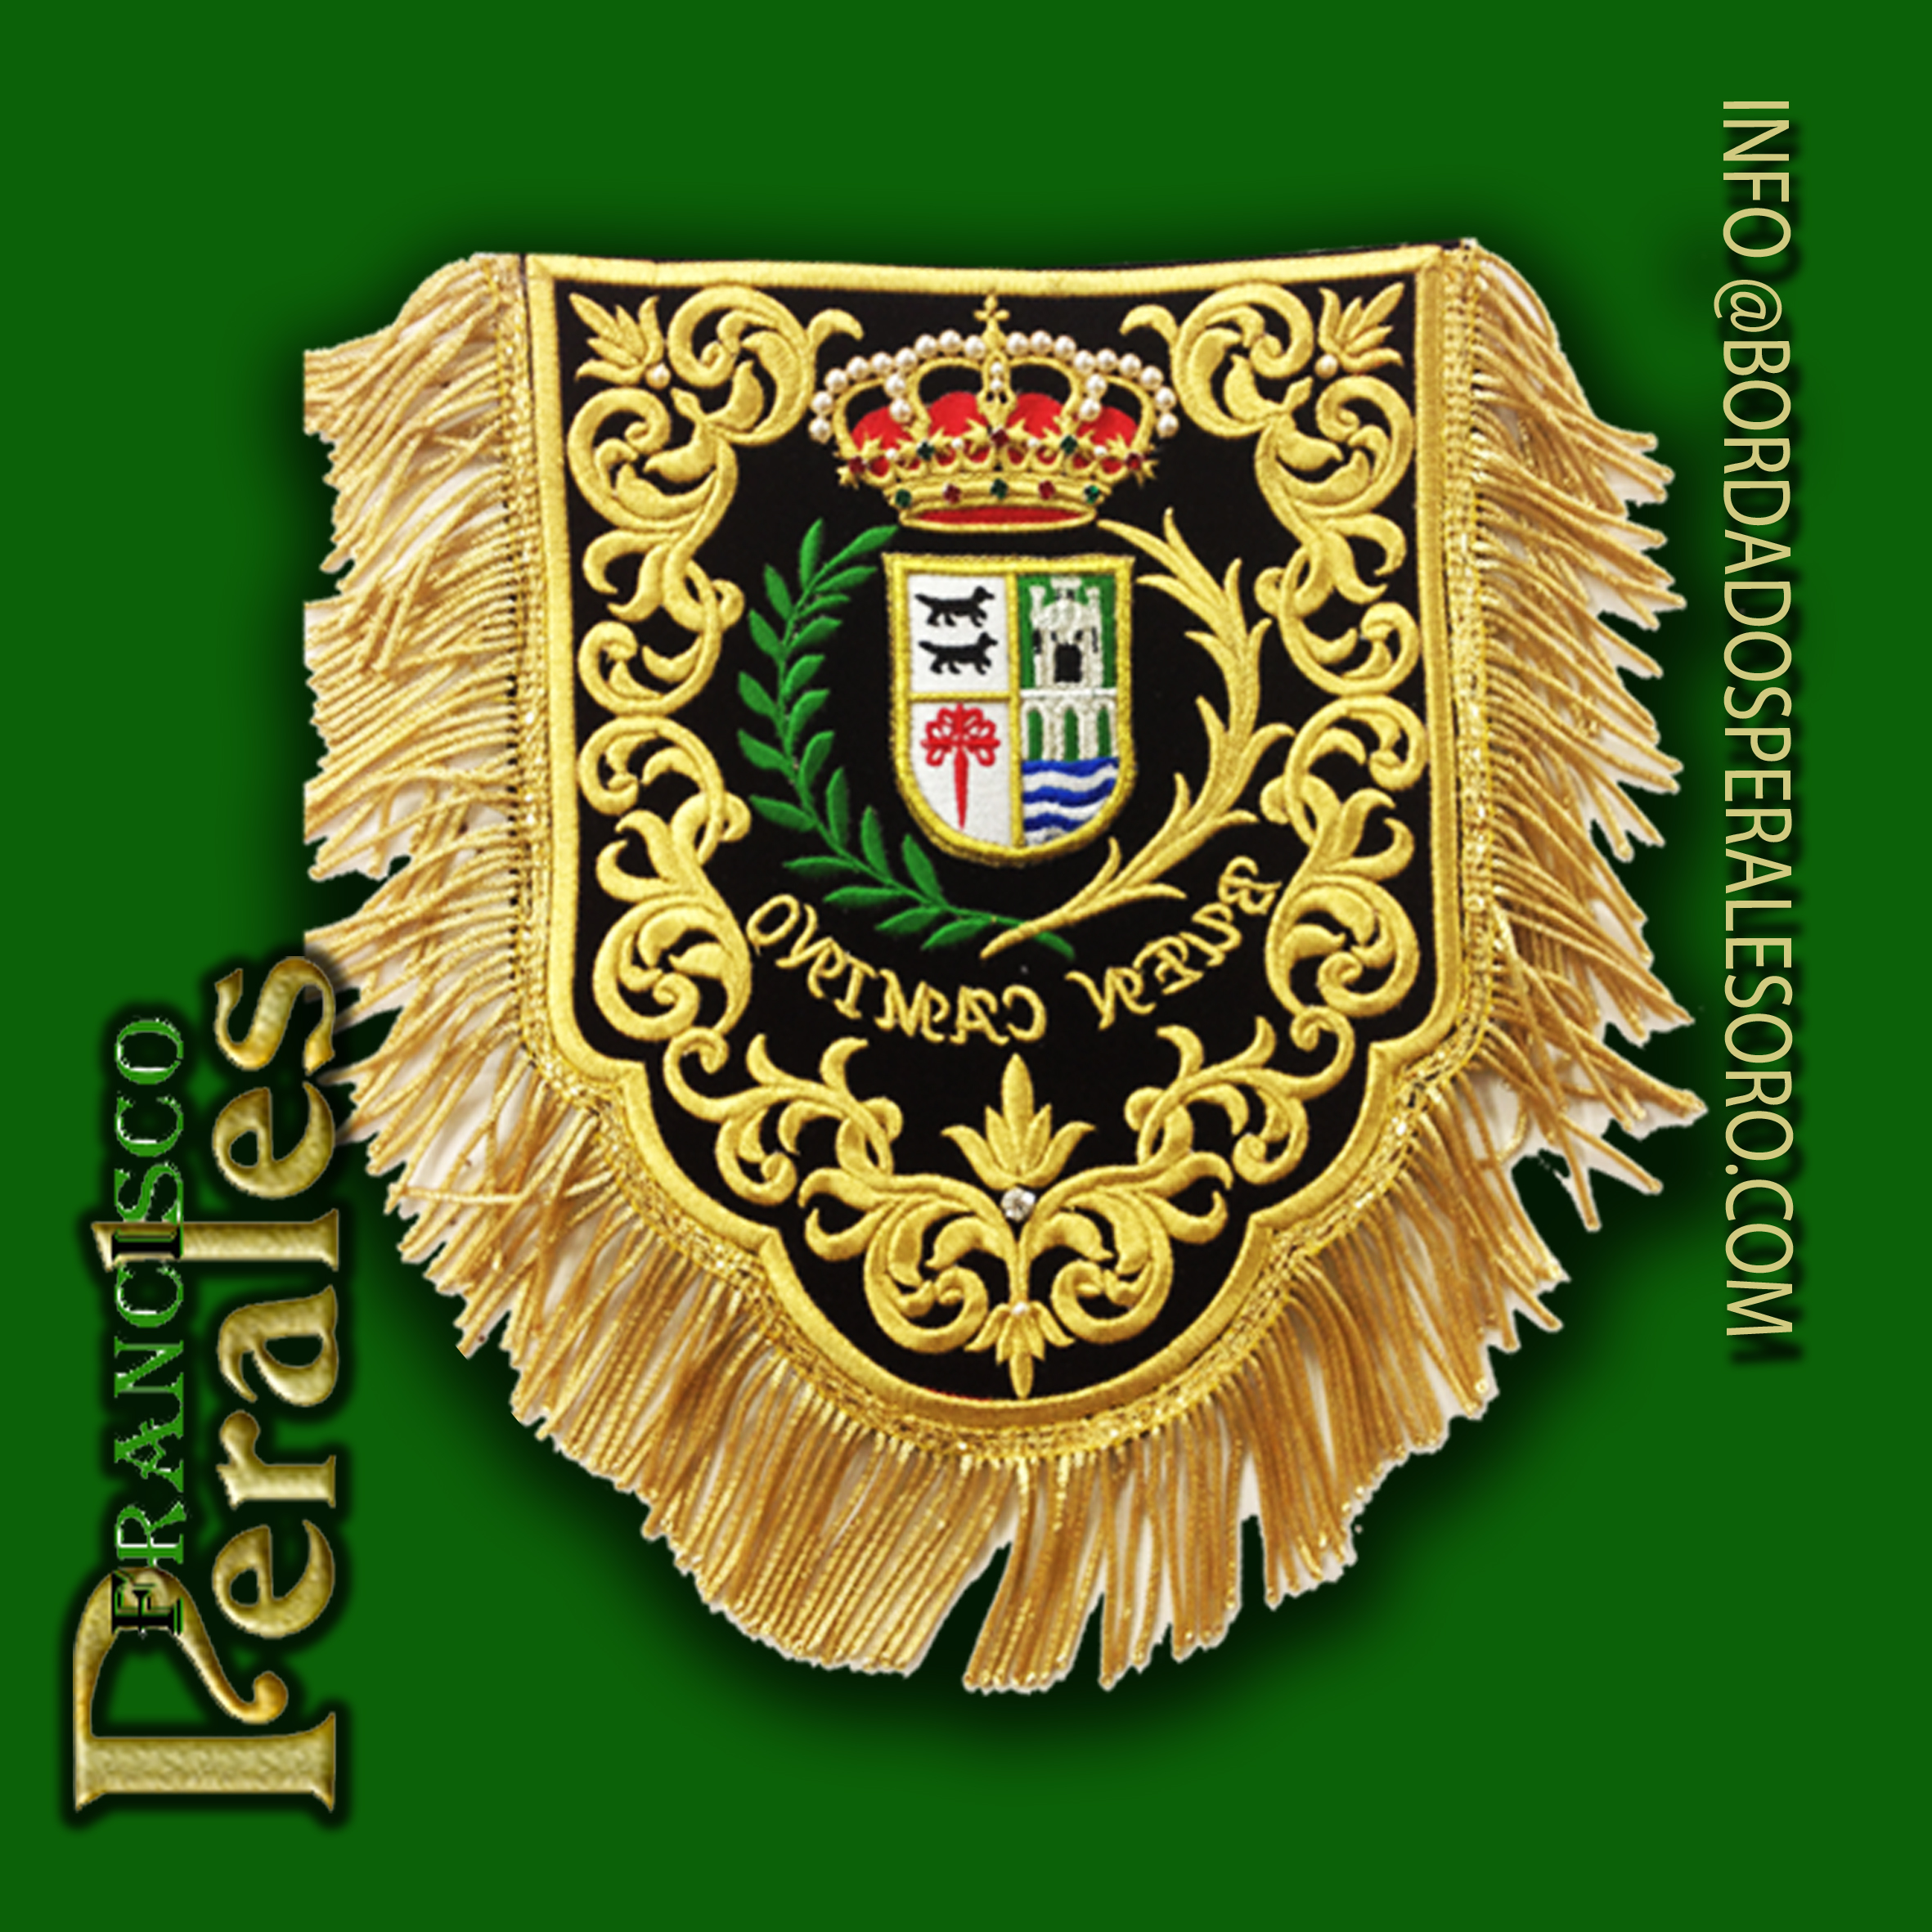 Mantolin Modelo 3